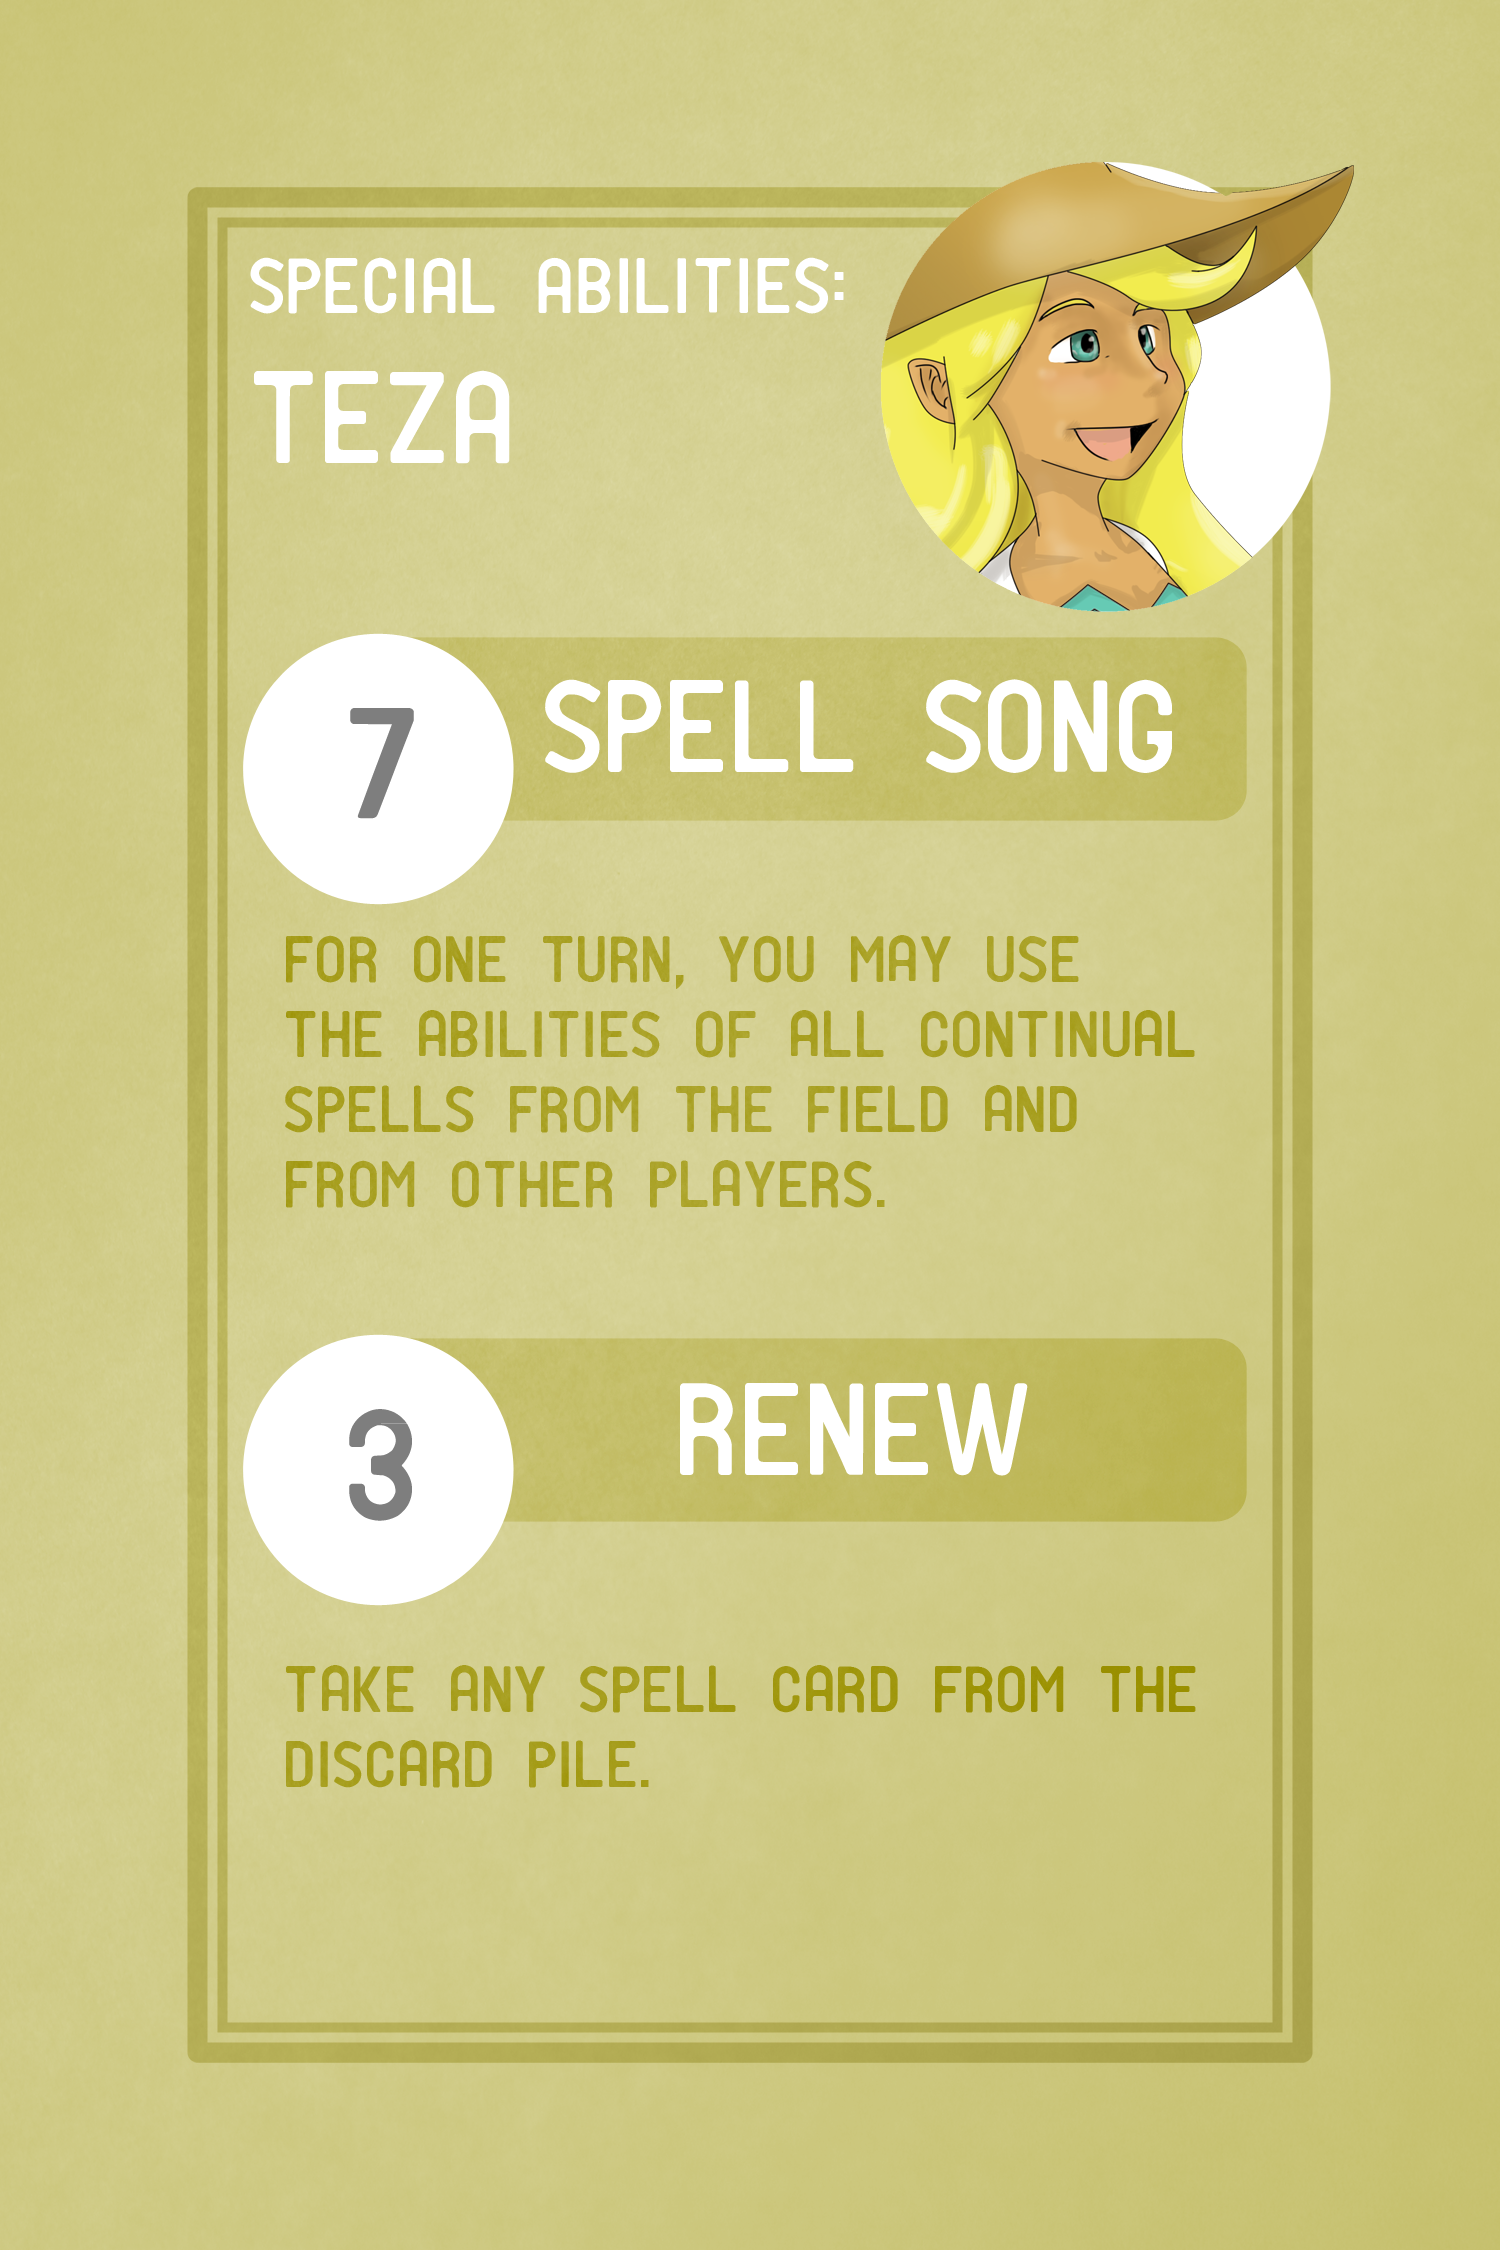 role_ability_teza_2.png